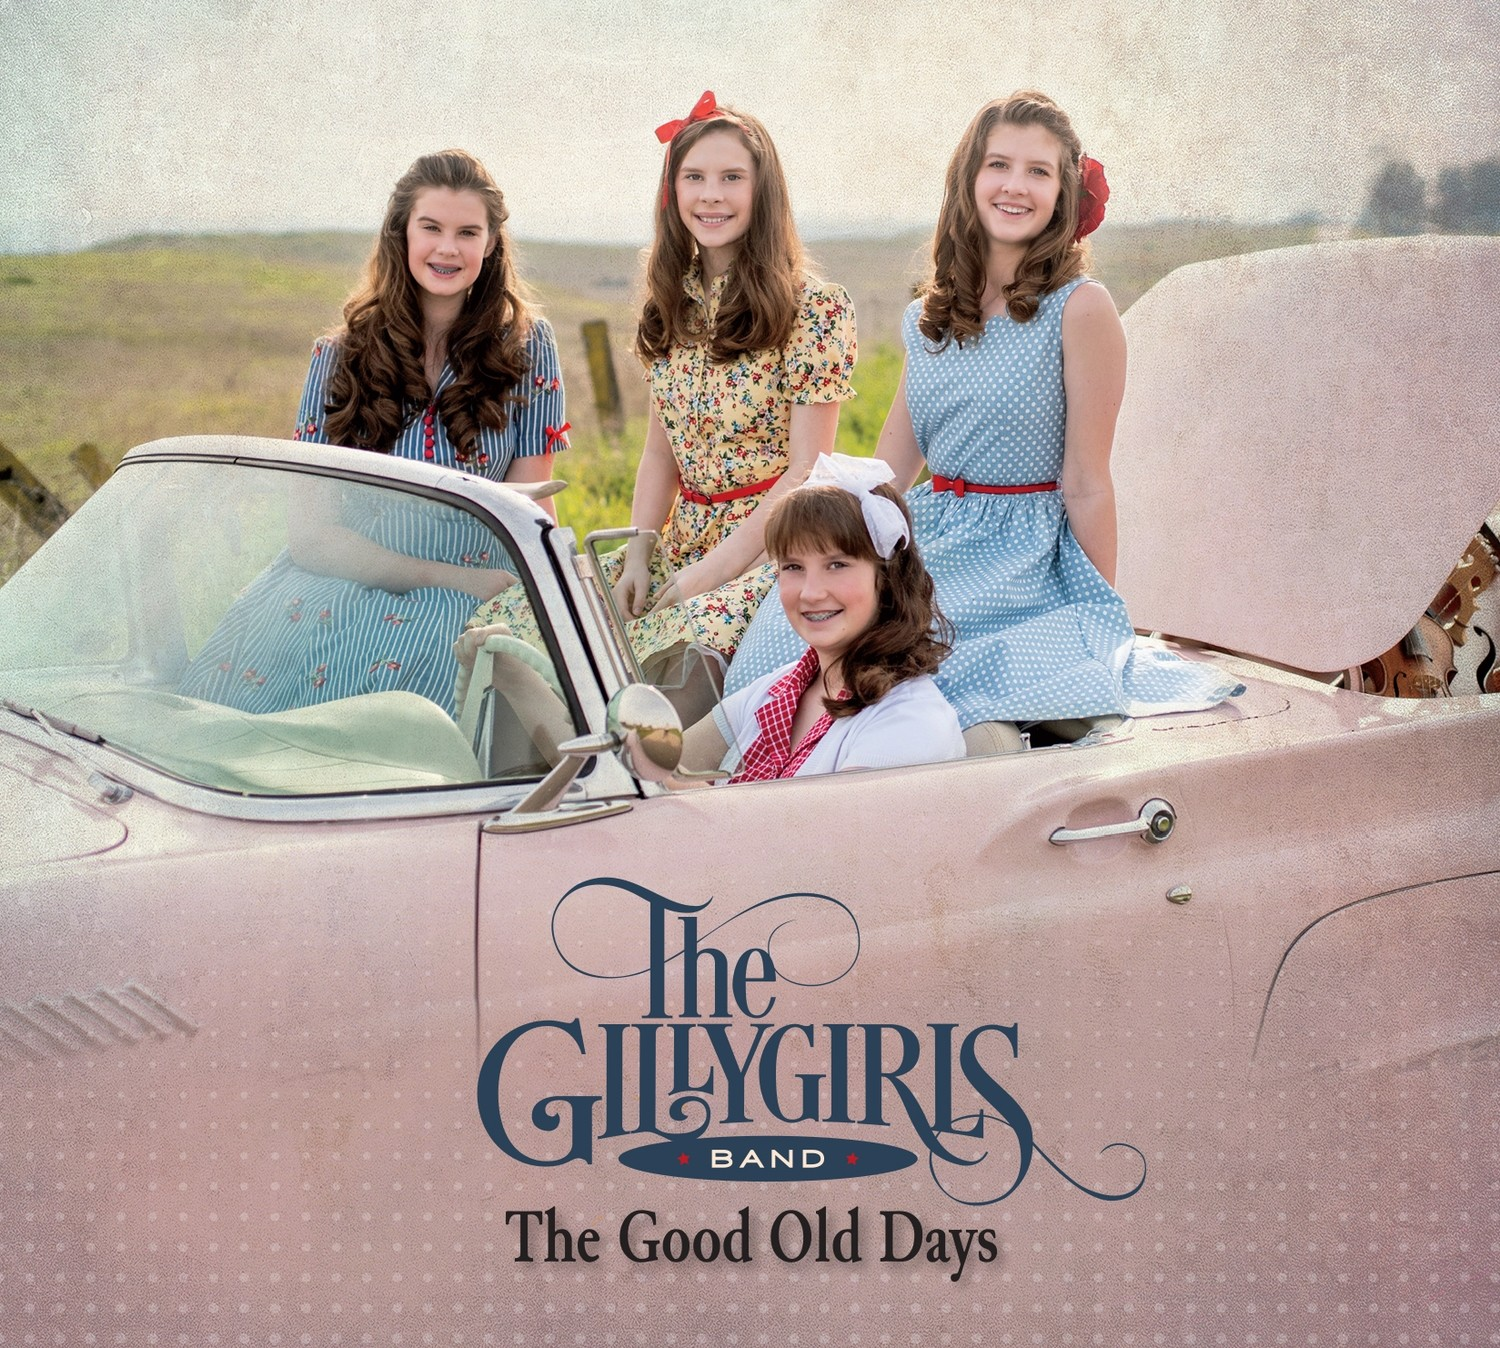 The Good Old Days CD